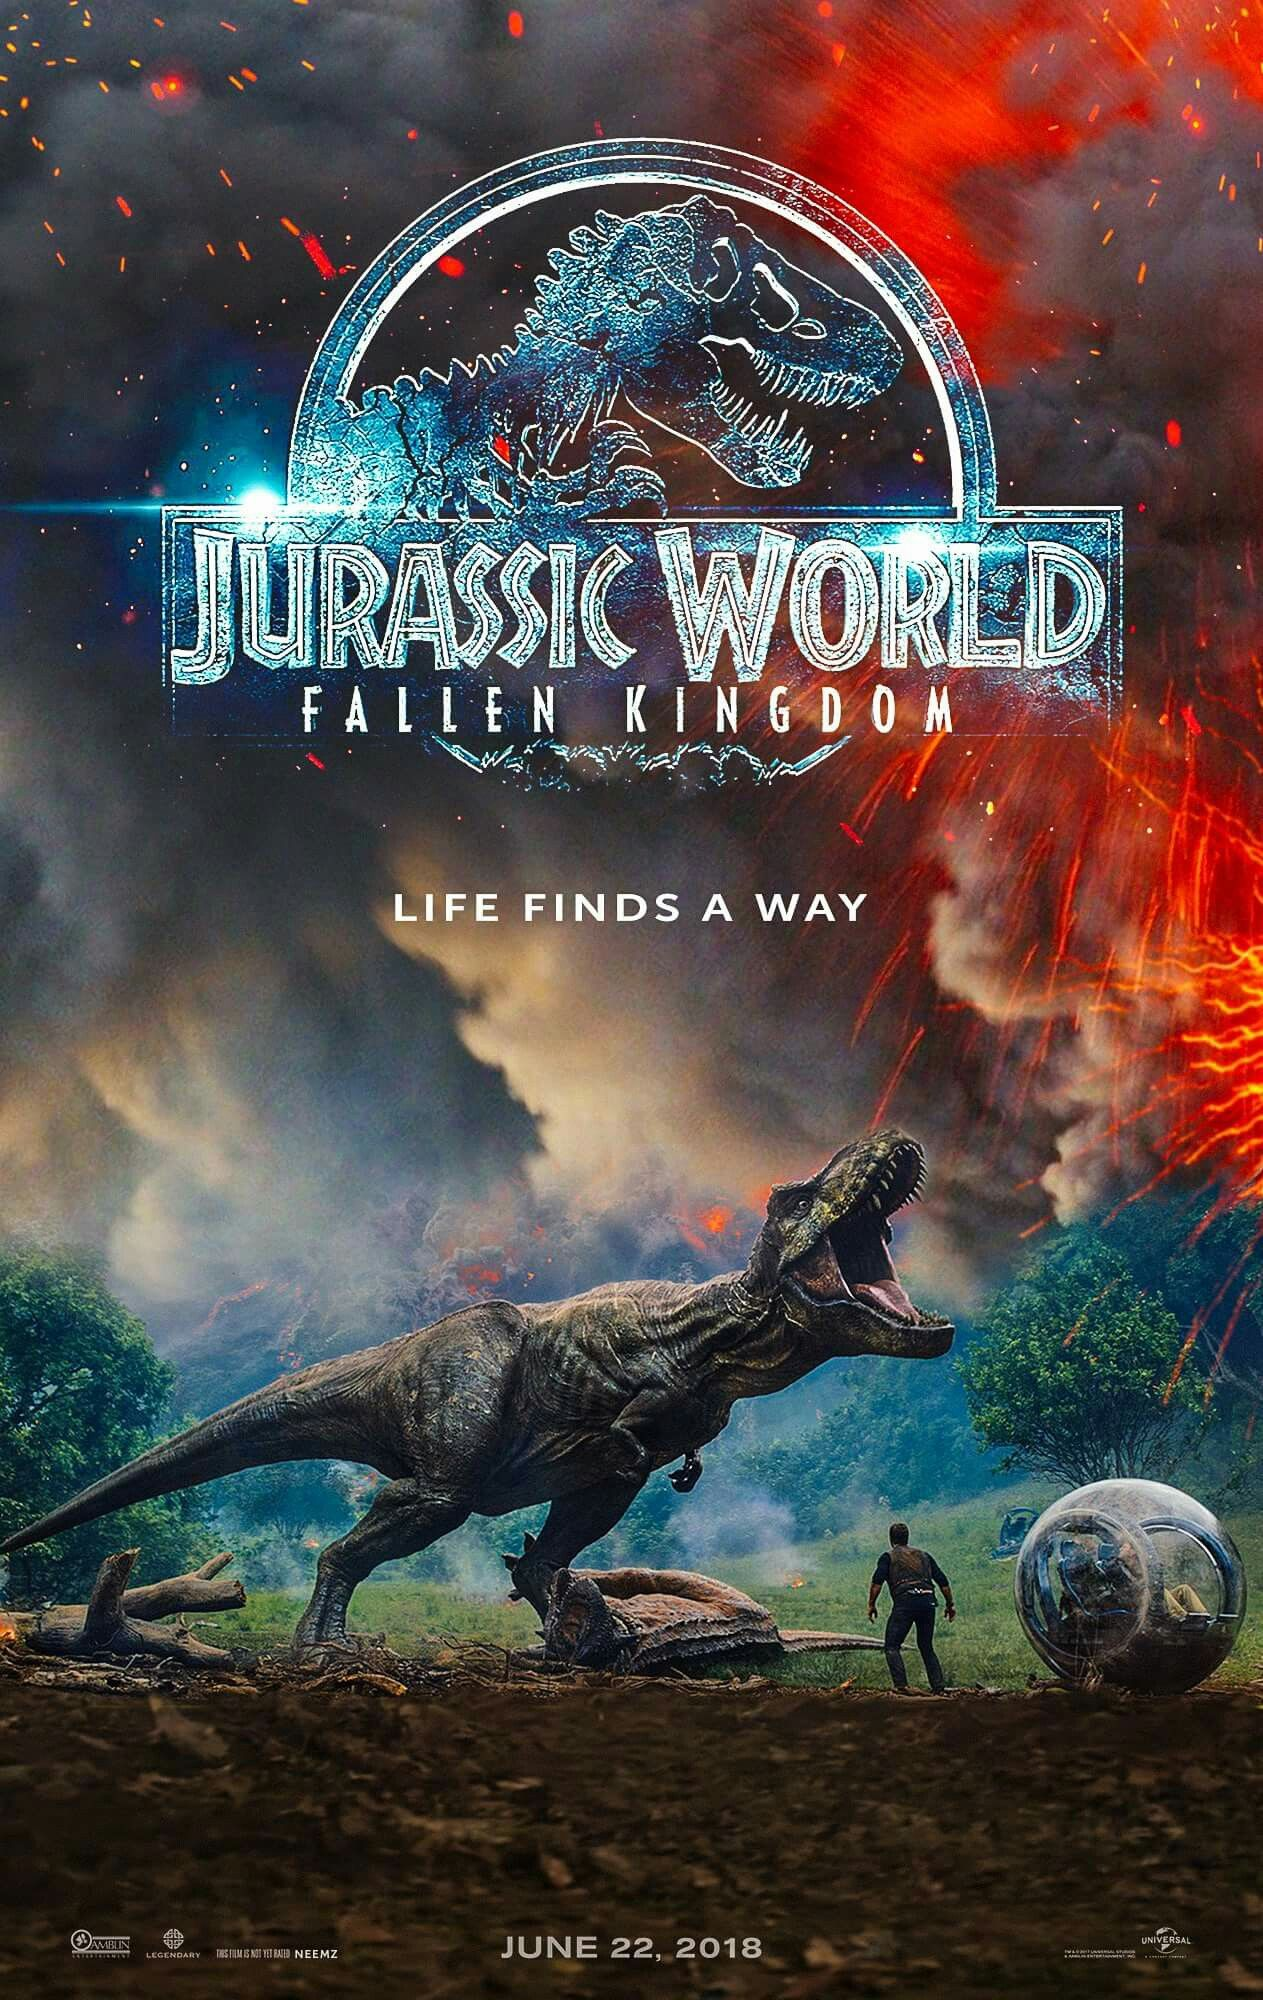 Jurassic World: Fallen Kingdom (2018) - Directed by: J. A. BayonaStarring: Chris Pratt, Bryce Dallas Howard, James Cromwell, Toby JonesRated: PG13Running Time: 2h 8mTMM Score: 2 stars out of 5STRENGTHS: It is a movie.WEAKNESSES: The emptiness inside when you leave the theater.